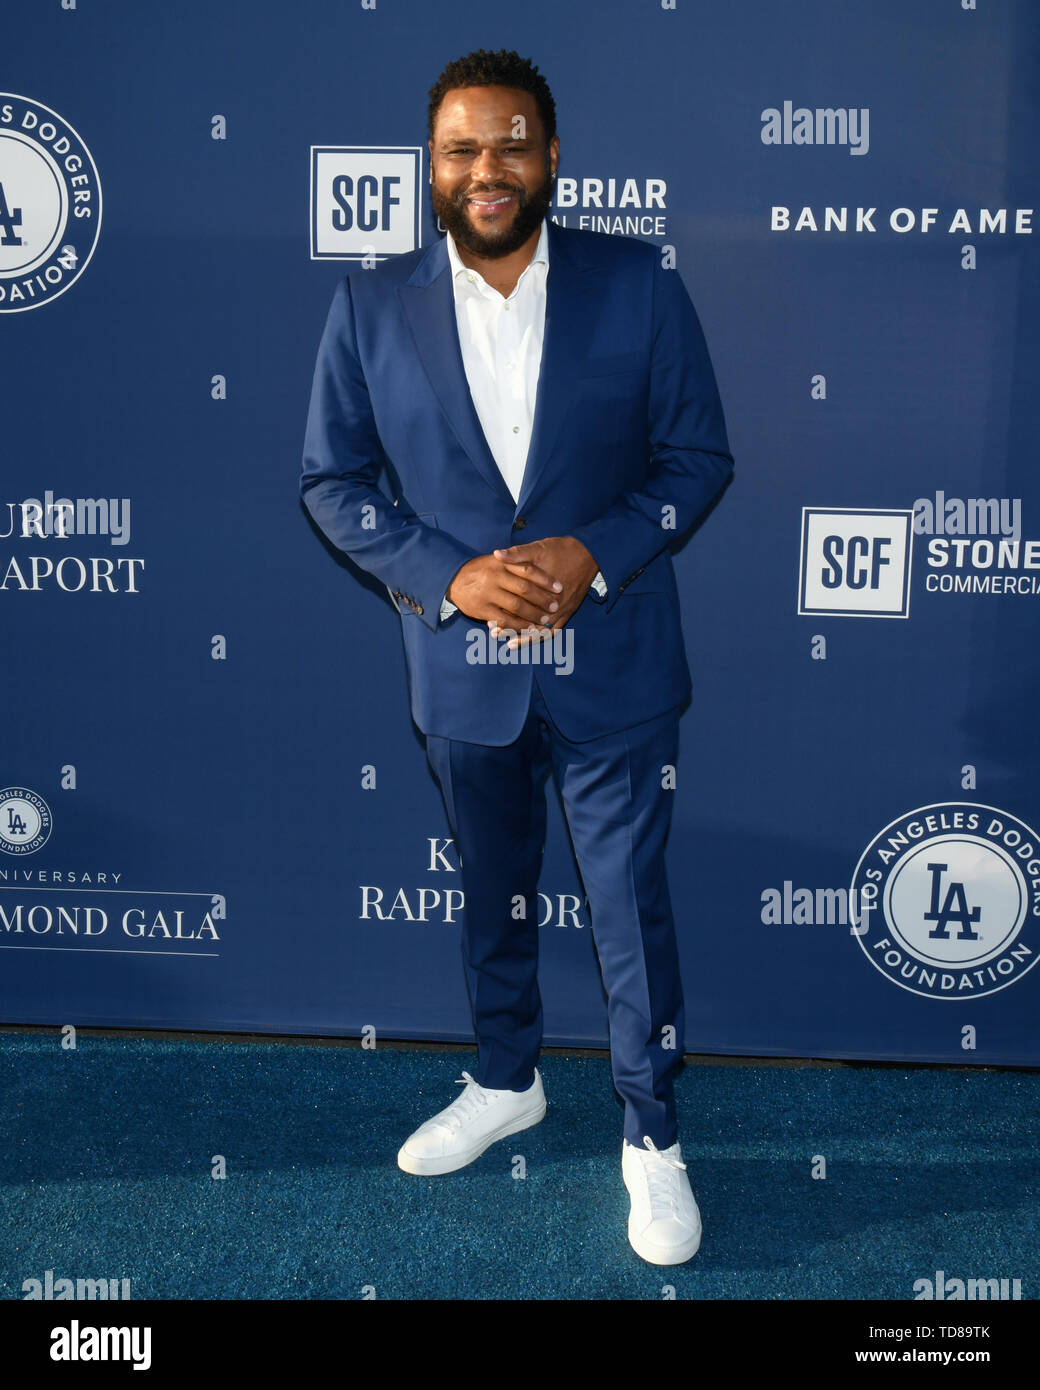 June 12, 2019 - Los Angeles, California, USA - 12, June 2019 - Los Angeles, California. Anthony Anderson attends the Los Angeles Dodgers Foundation Blue Diamond Gala at Dodger Stadium. (Credit Image: © Billy Bennight/ZUMA Wire) - Stock Image